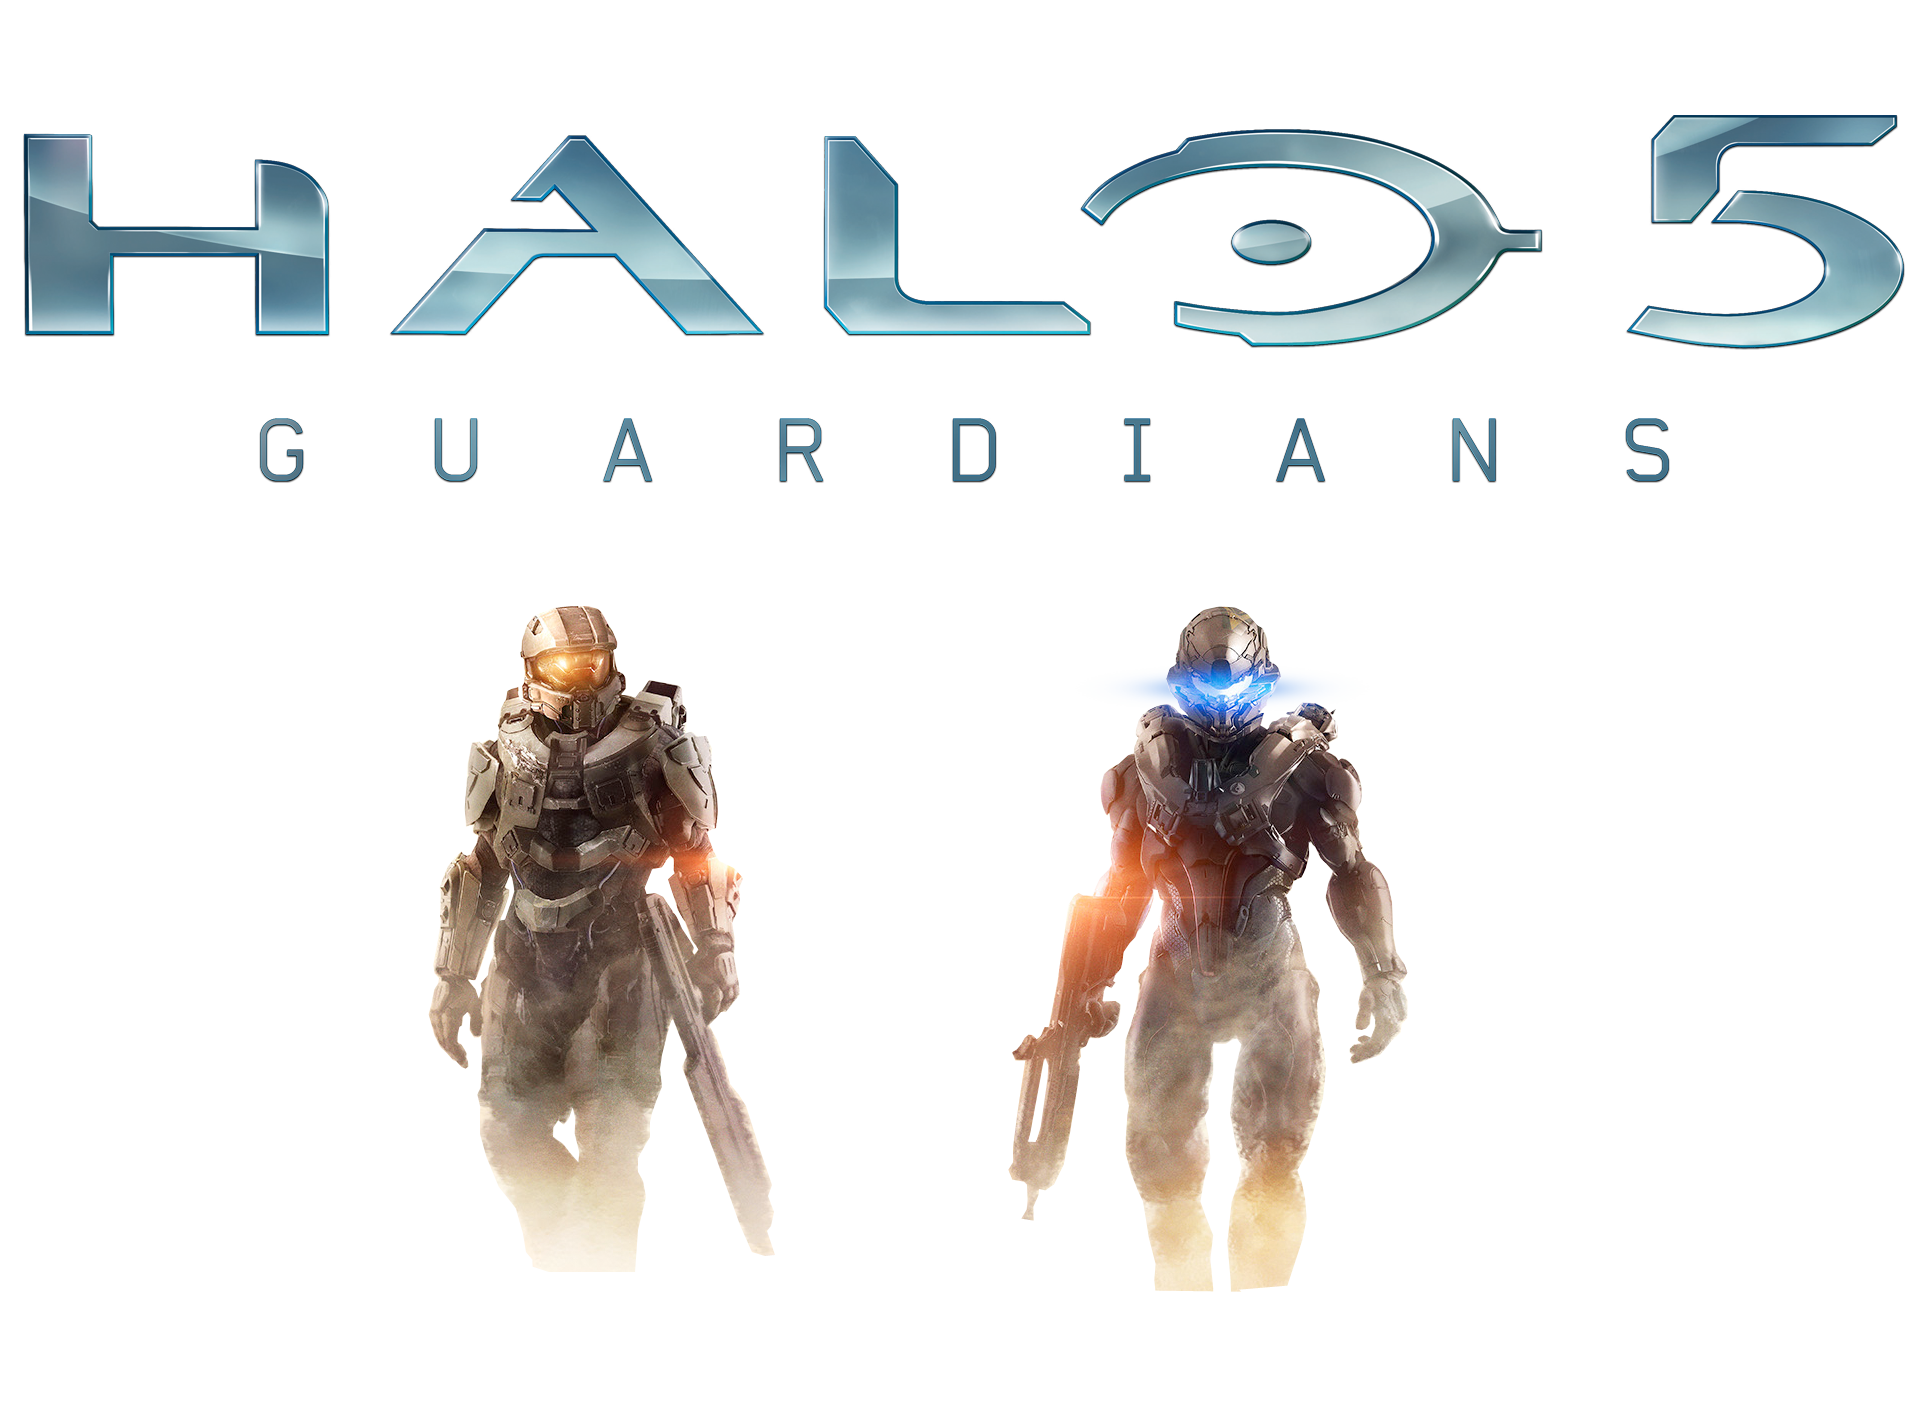 Halo 5 guardians logo png transparent. And render assets by